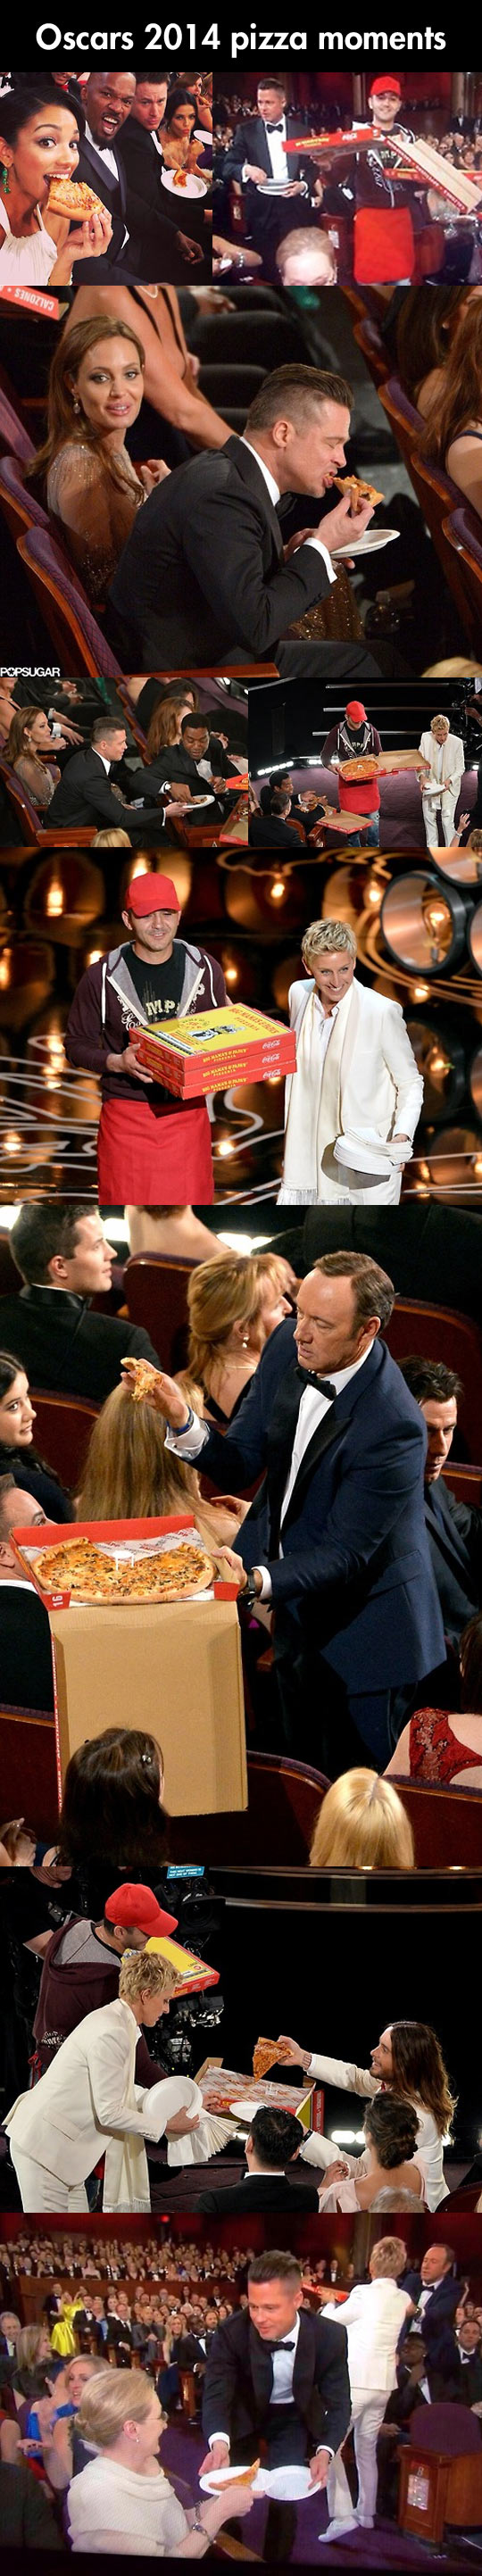 Pizza party at the Oscars…